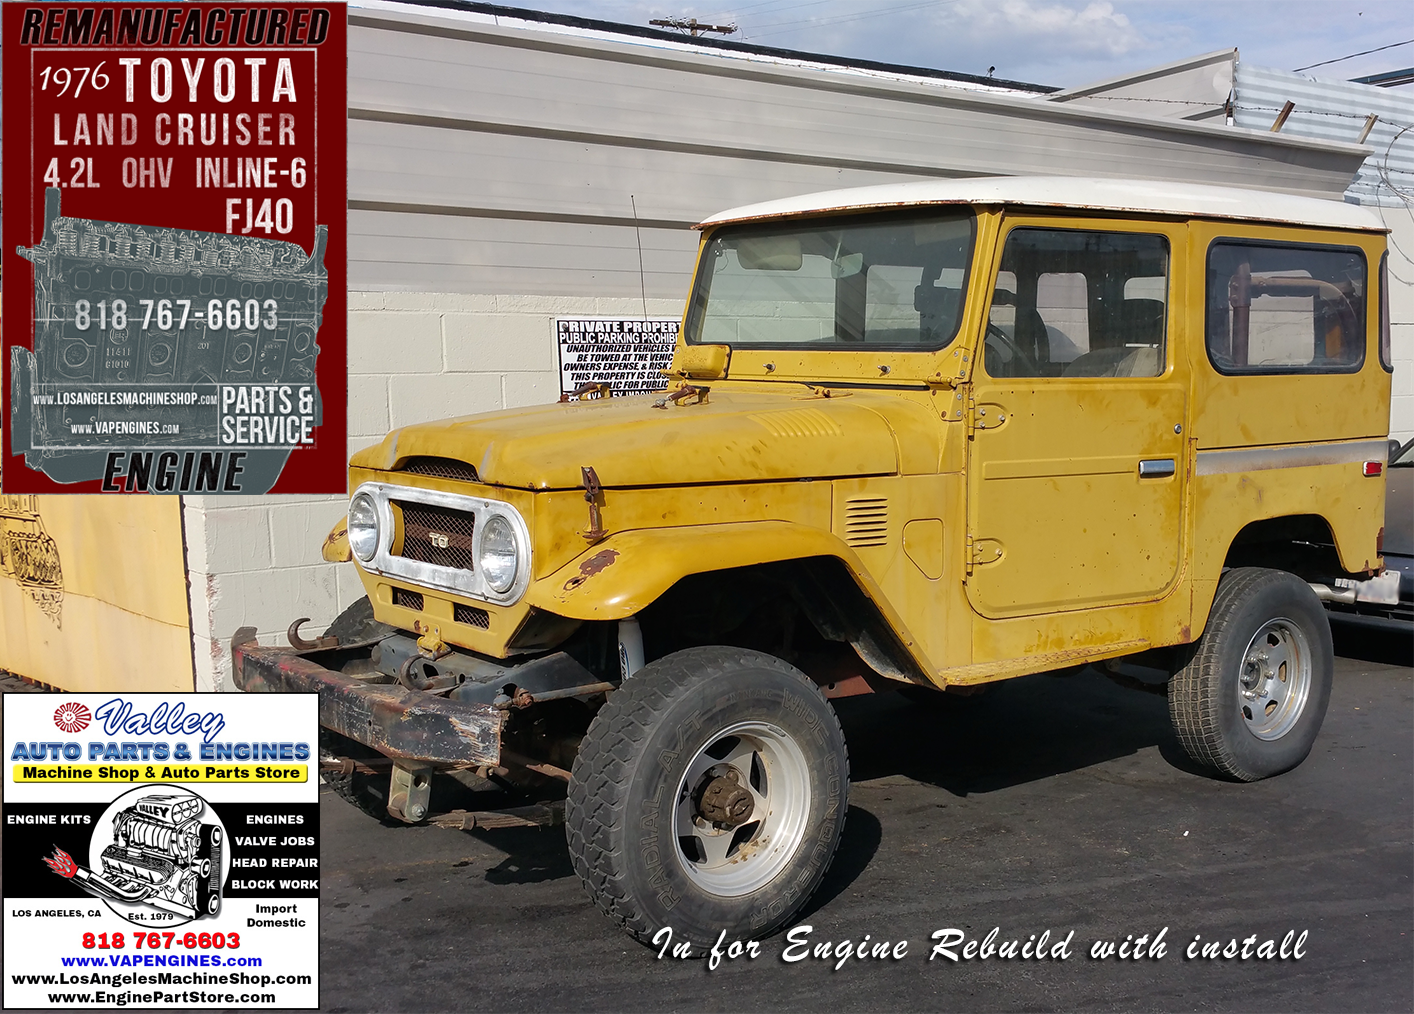 76 Toyota Land Cruiser FJ40 4 2 Engine Rebuilding - Machine